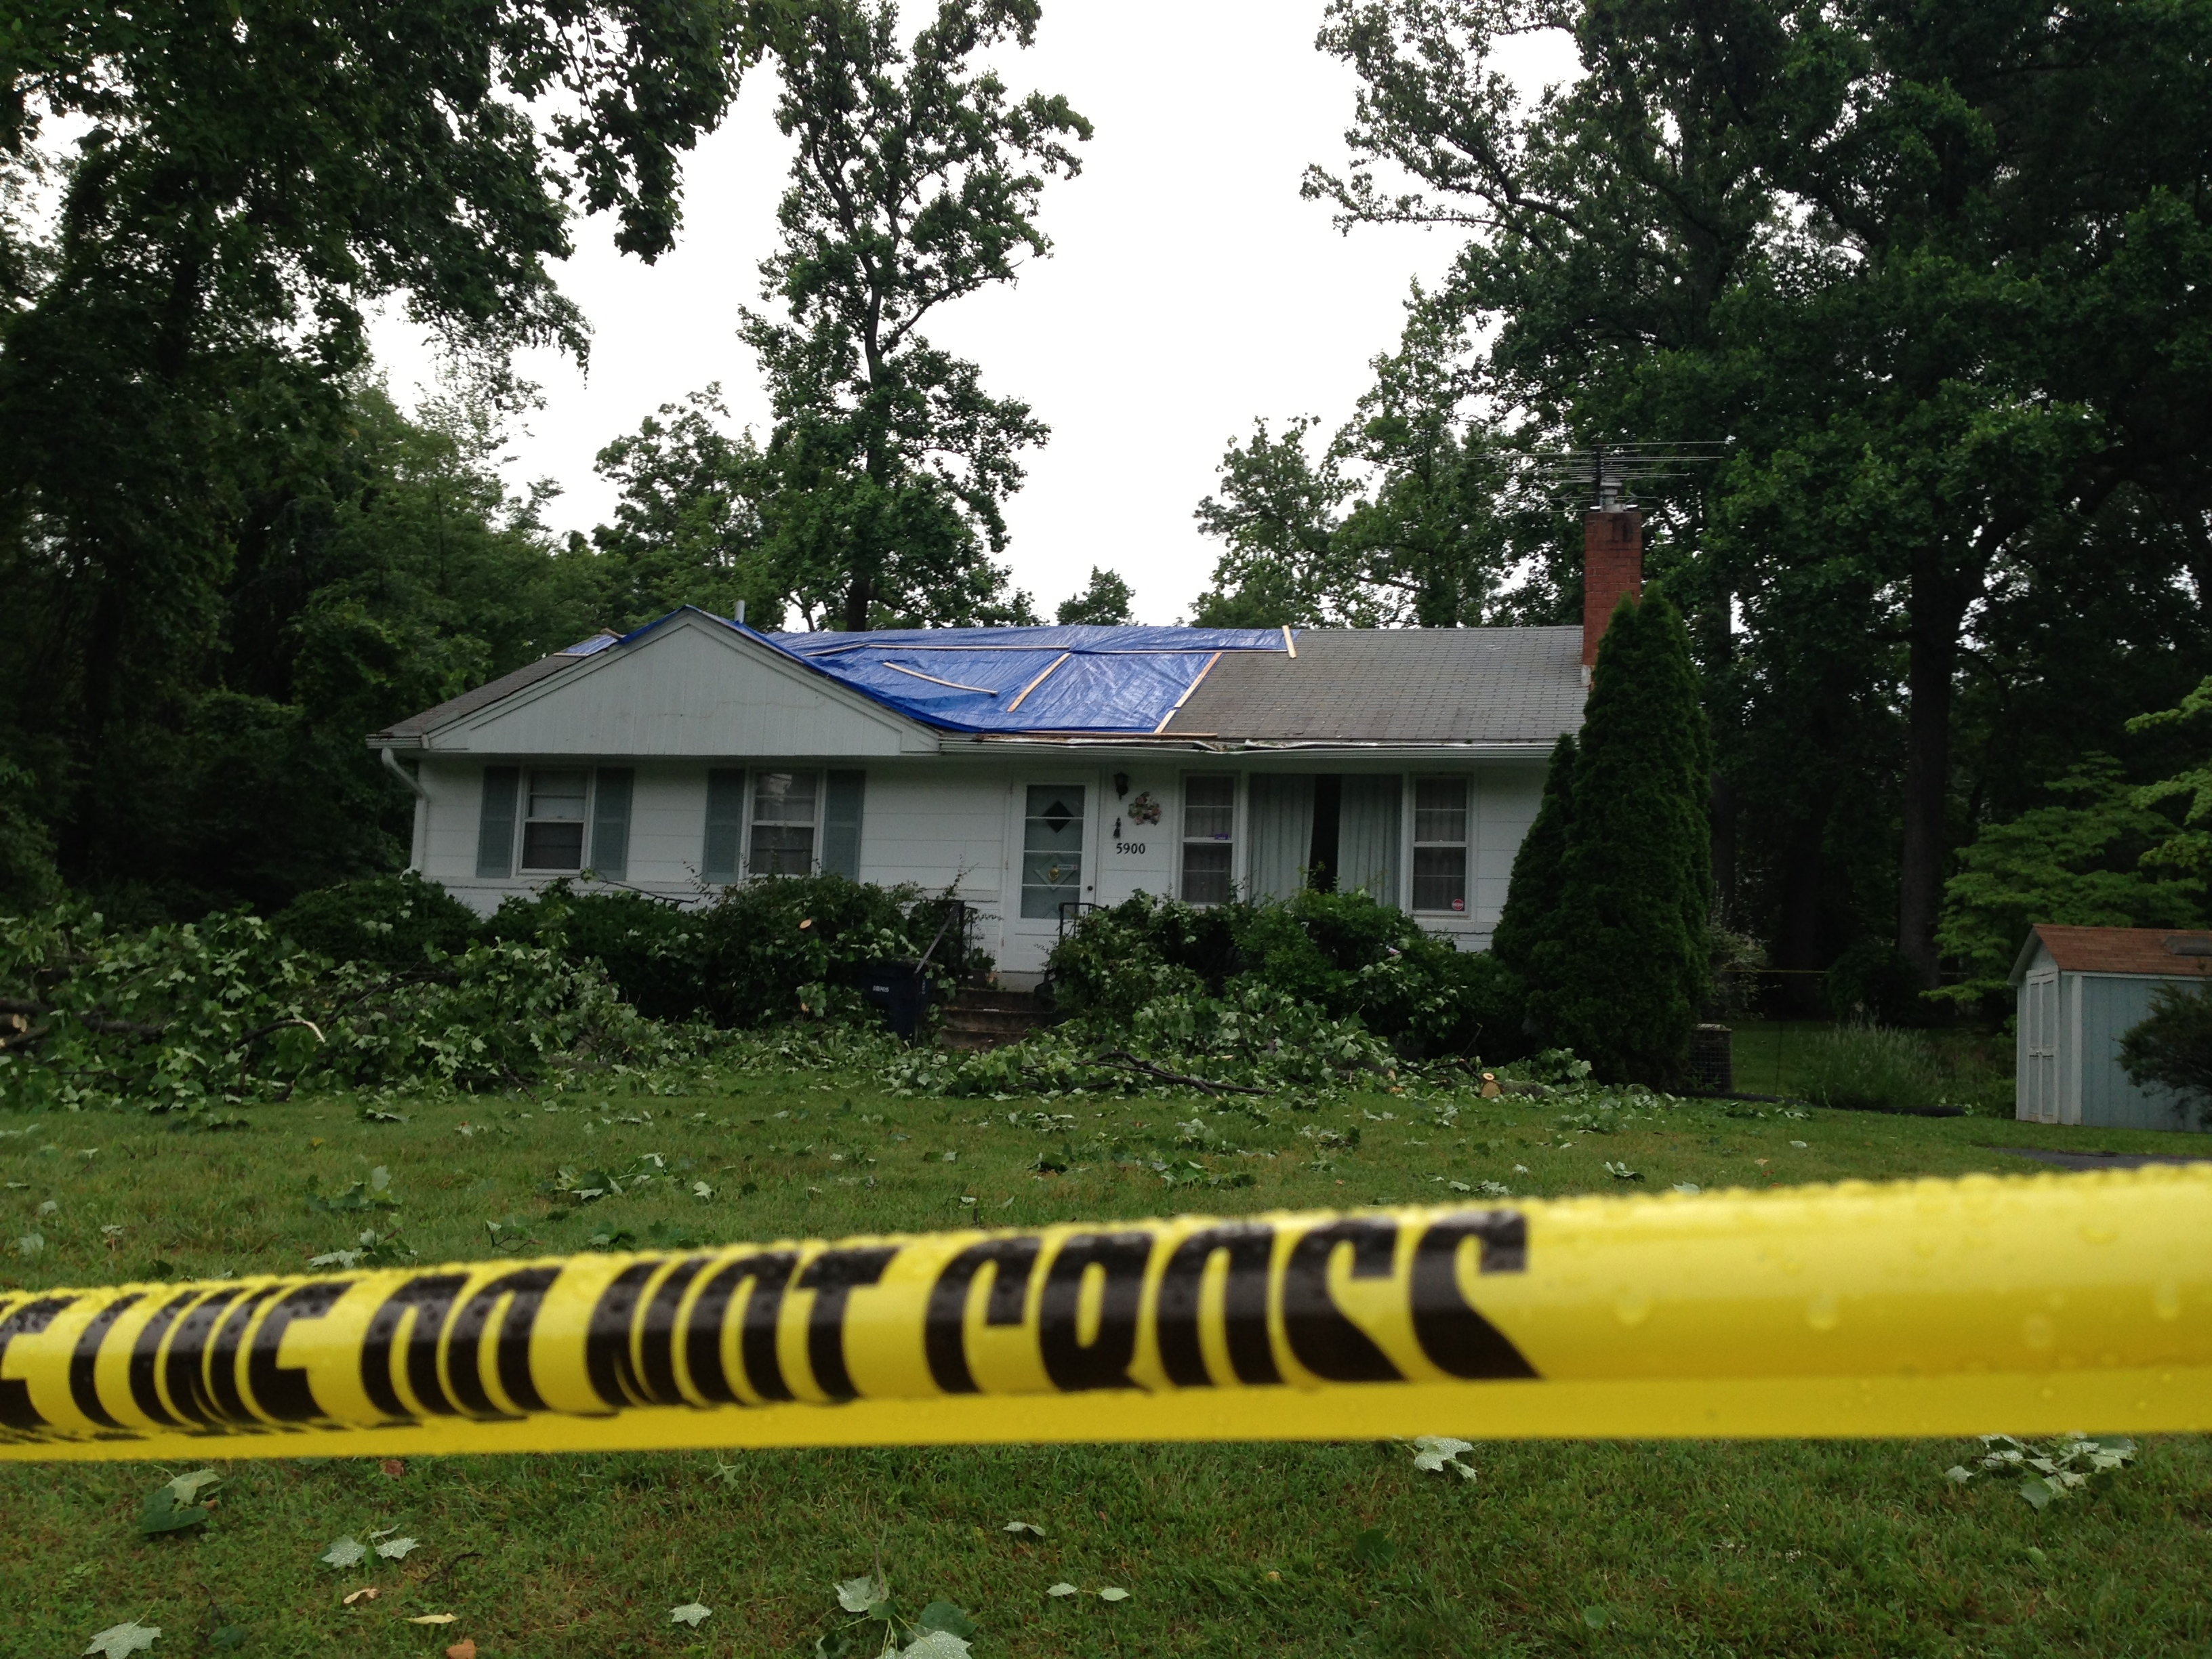 Home sliced by falling tree is dangerous to public